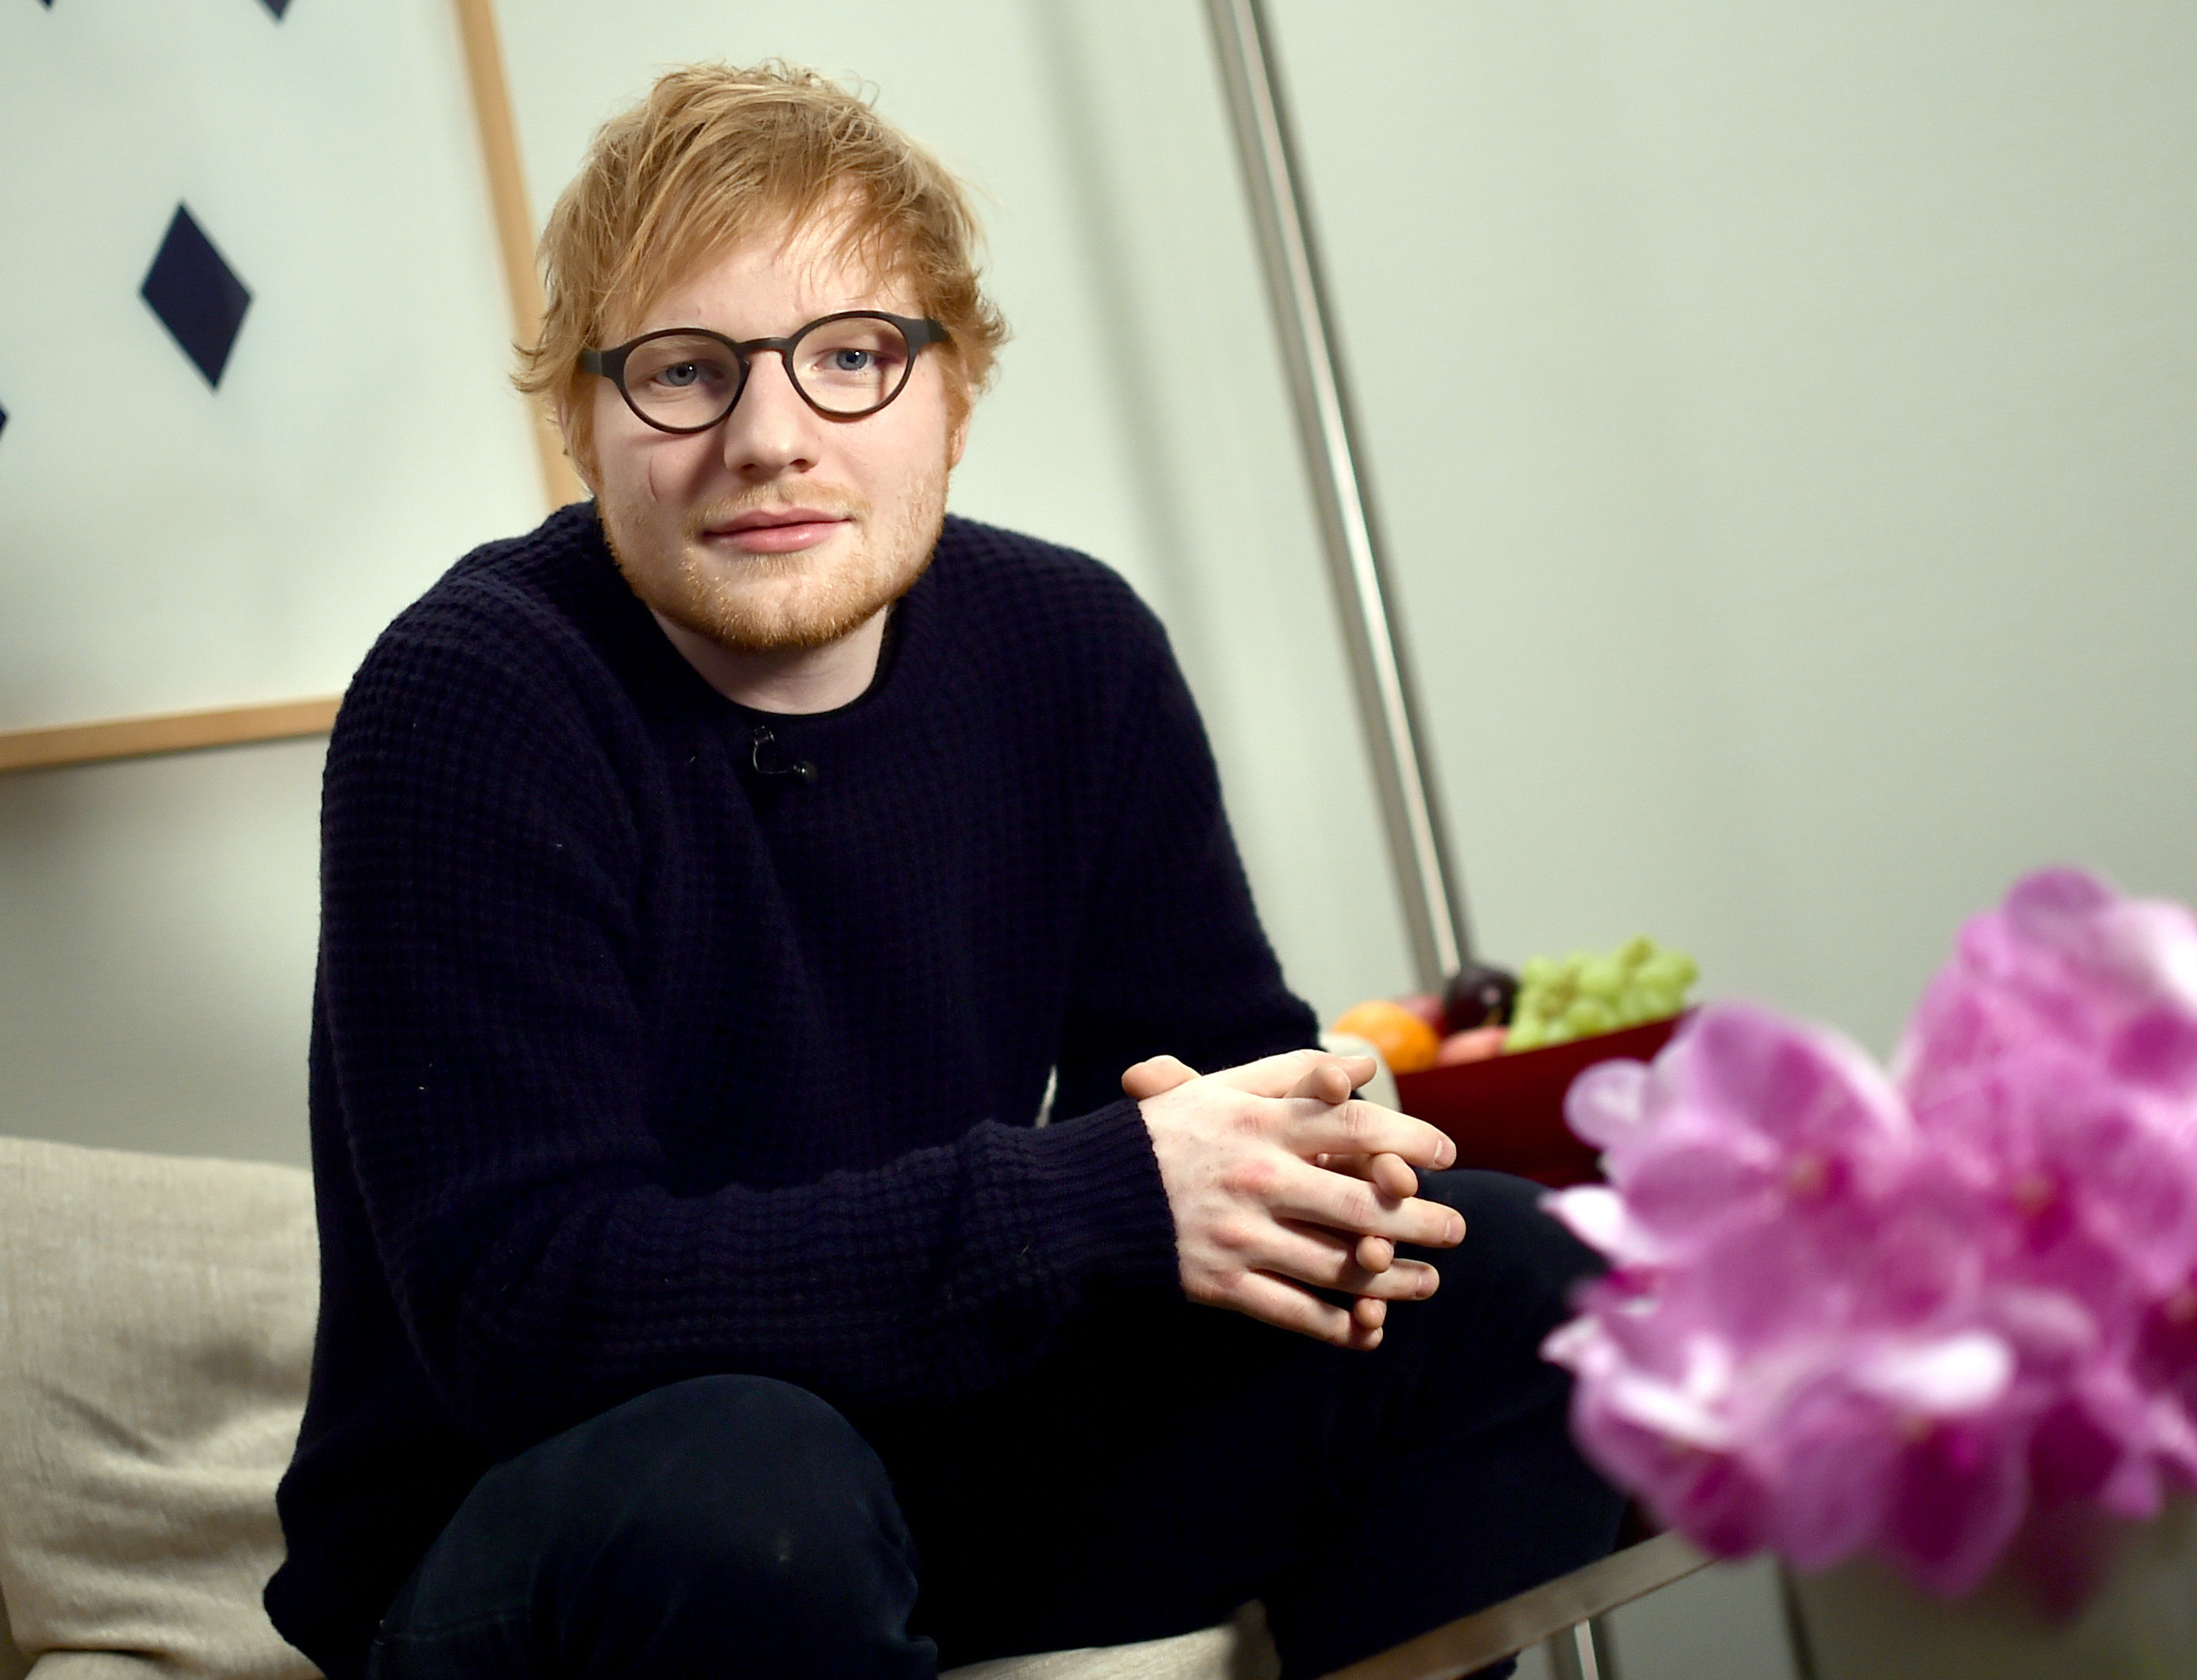 https://www.theplace.ru/archive/ed_sheeran/img/2017_session_007_(5).jpg